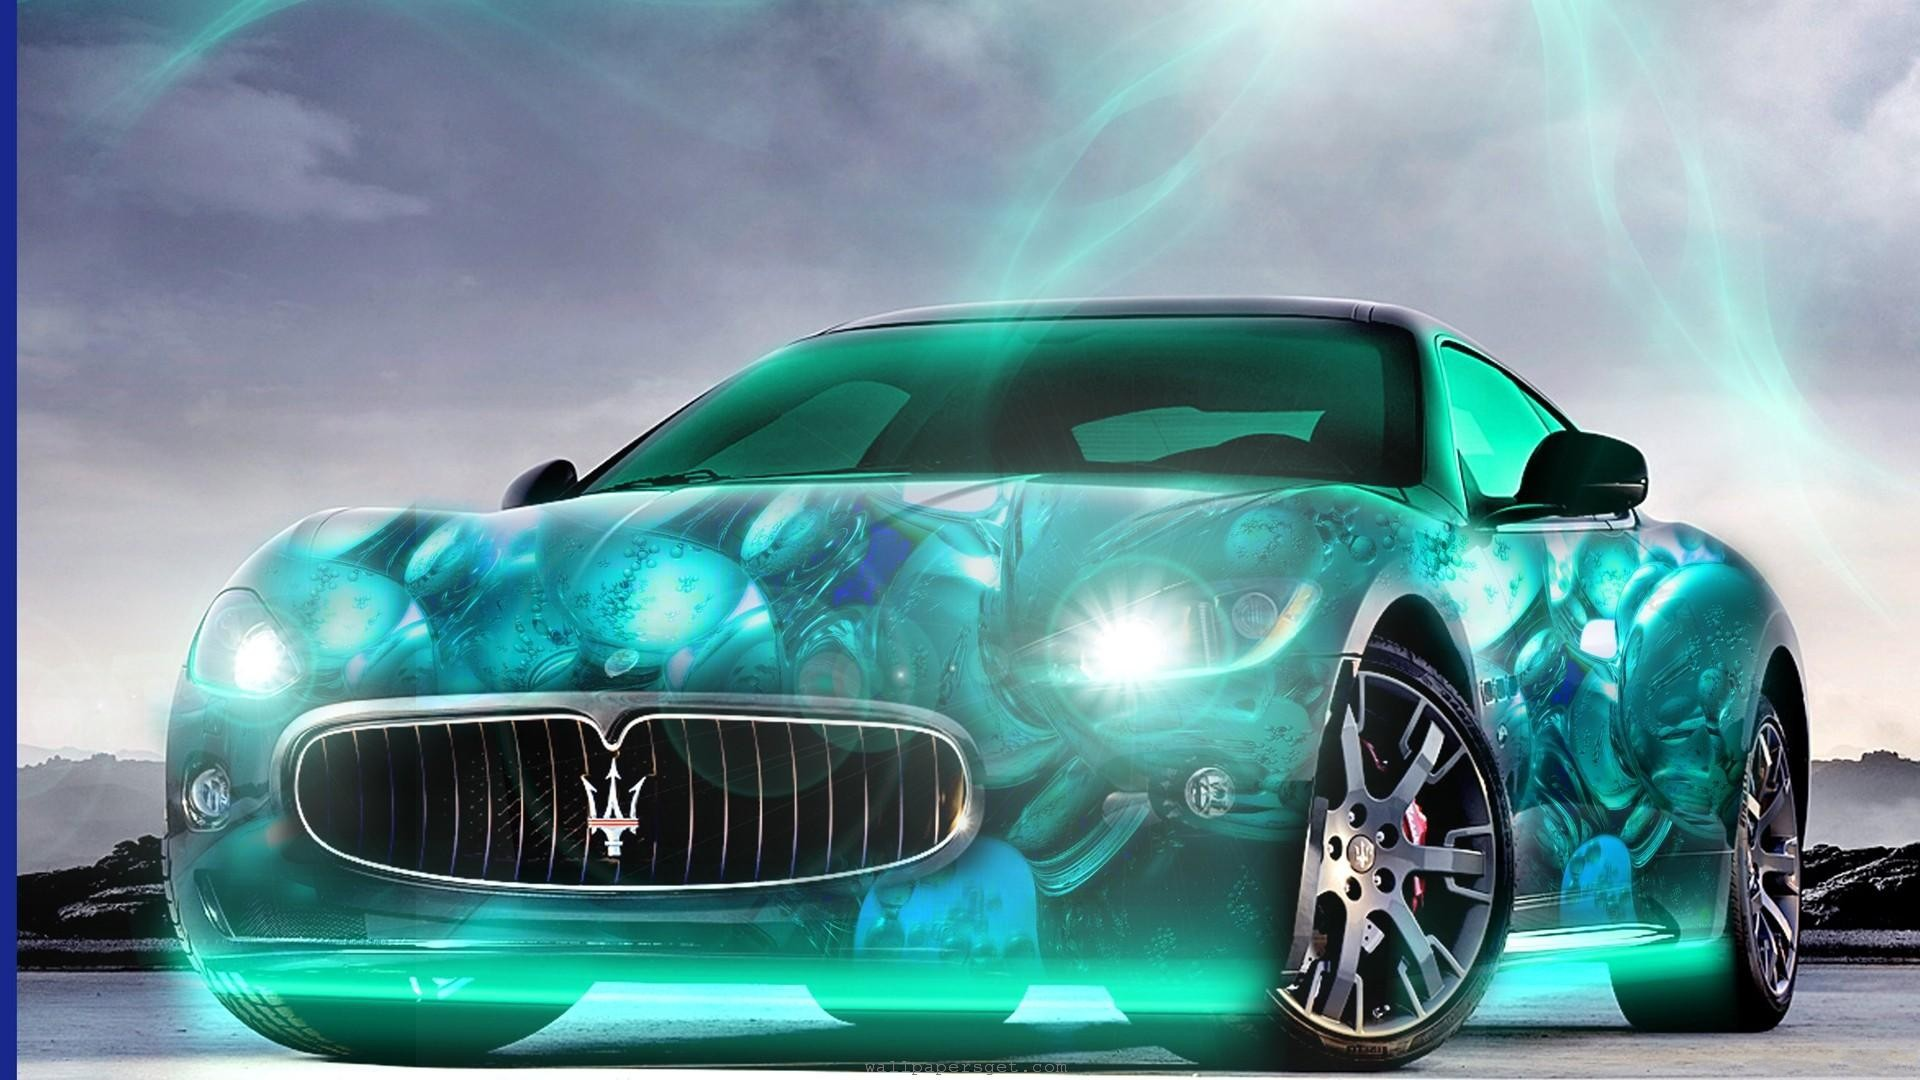 Maserati hd wallpaper background image 1920x1080 id 248818 wallpaper abyss - Car live wallpaper ...